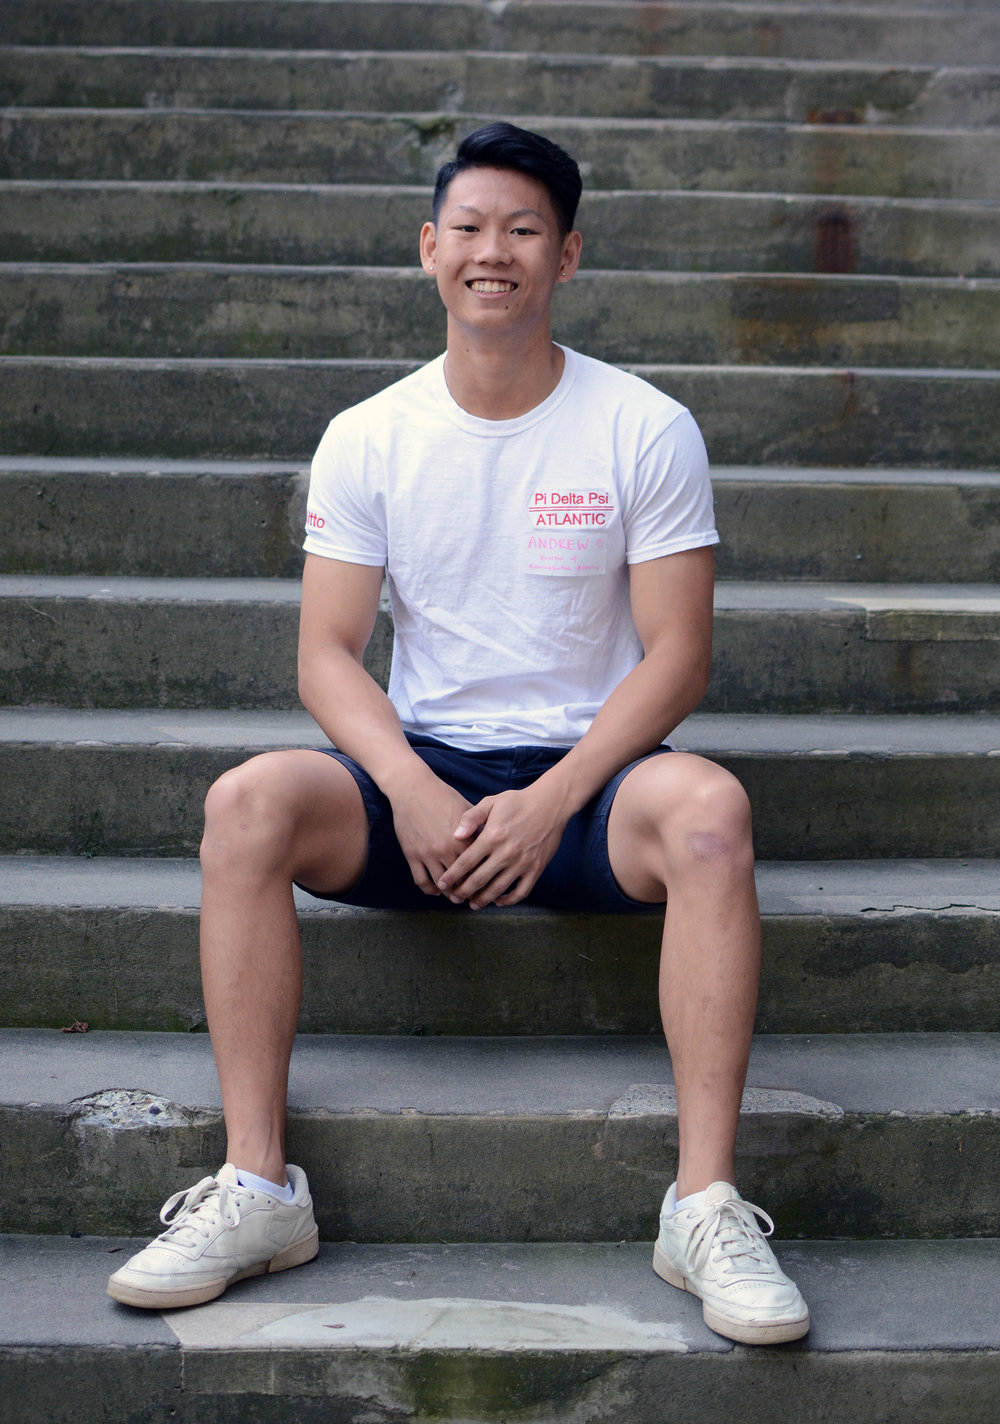 Andrew Lee   Director of Administrative Affairs    Year : Junior, 2020  Major : Human Biology, Health, and Society  Other Involvements : Pi Delta Psi, Chinese Students Association  Andrew is the the Director of Administrative Affairs and is excited to be the main point of contact for all of you and keeping the community updated through email blasts. CAPSU is an outlet for Andrew to help learn more about his own Asian-American identity, allow other people to find their identity, and promote collaboration and support throughout the community. Find Andrew watching baseball and basketball games whenever he can or just chilling with Jong, Jeff or Hansen.